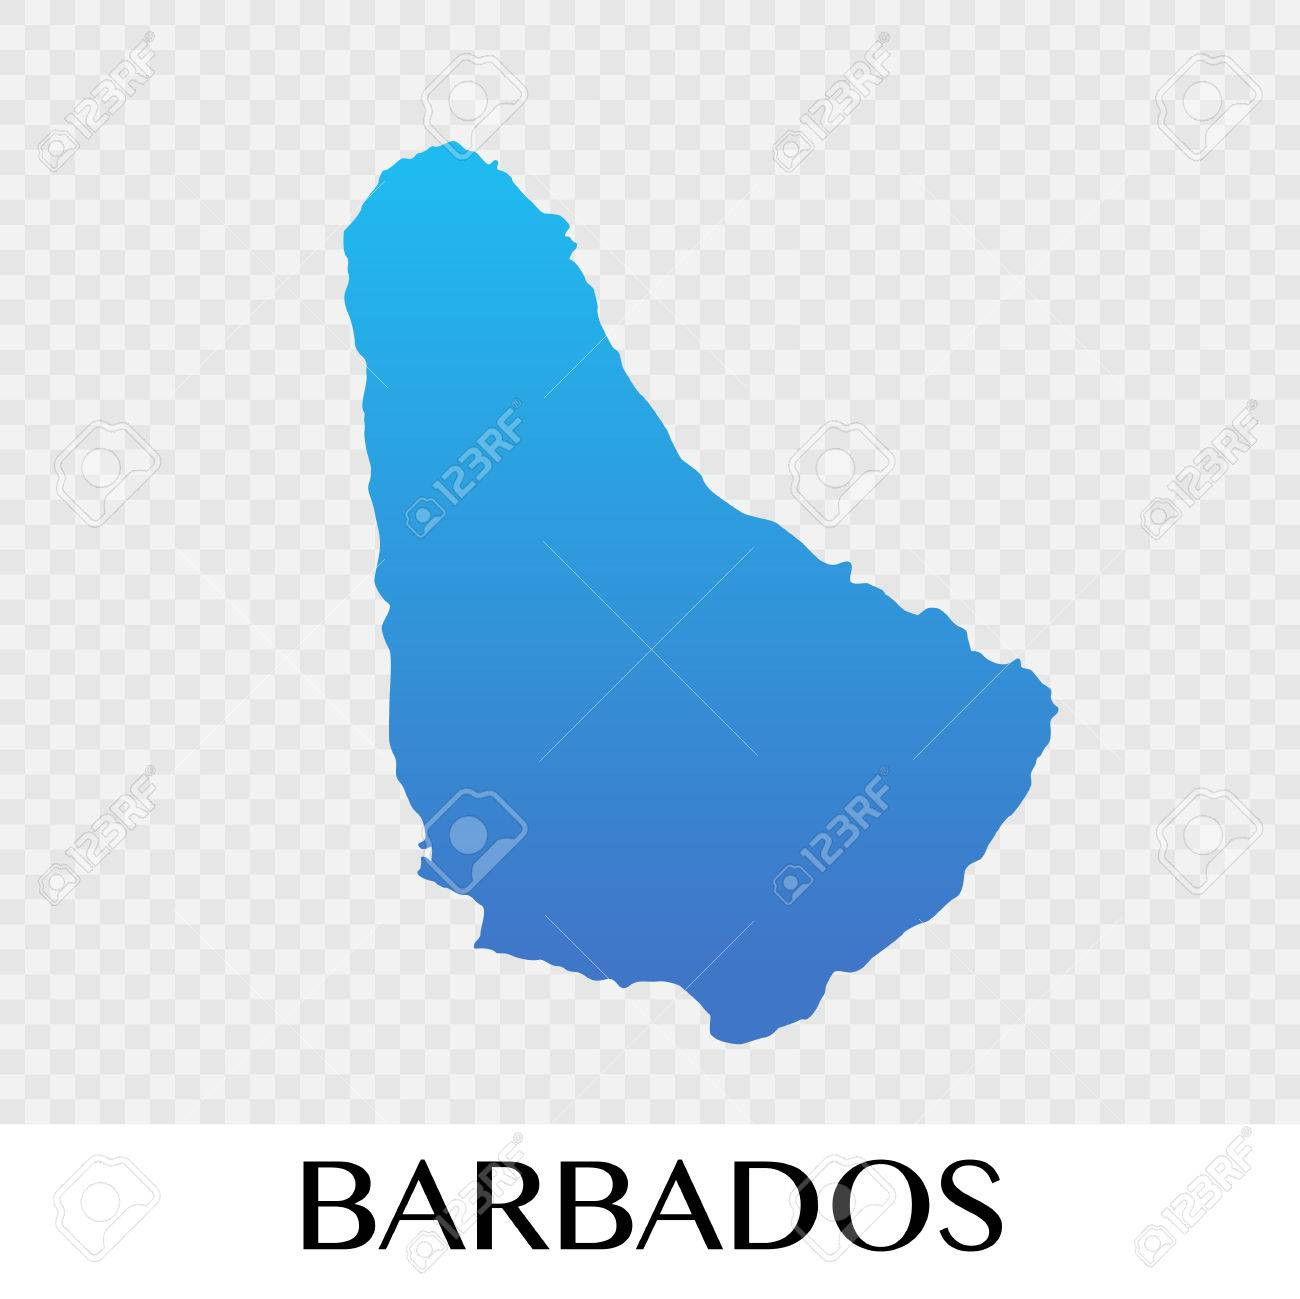 barbados map in north america continent illustration design royalty